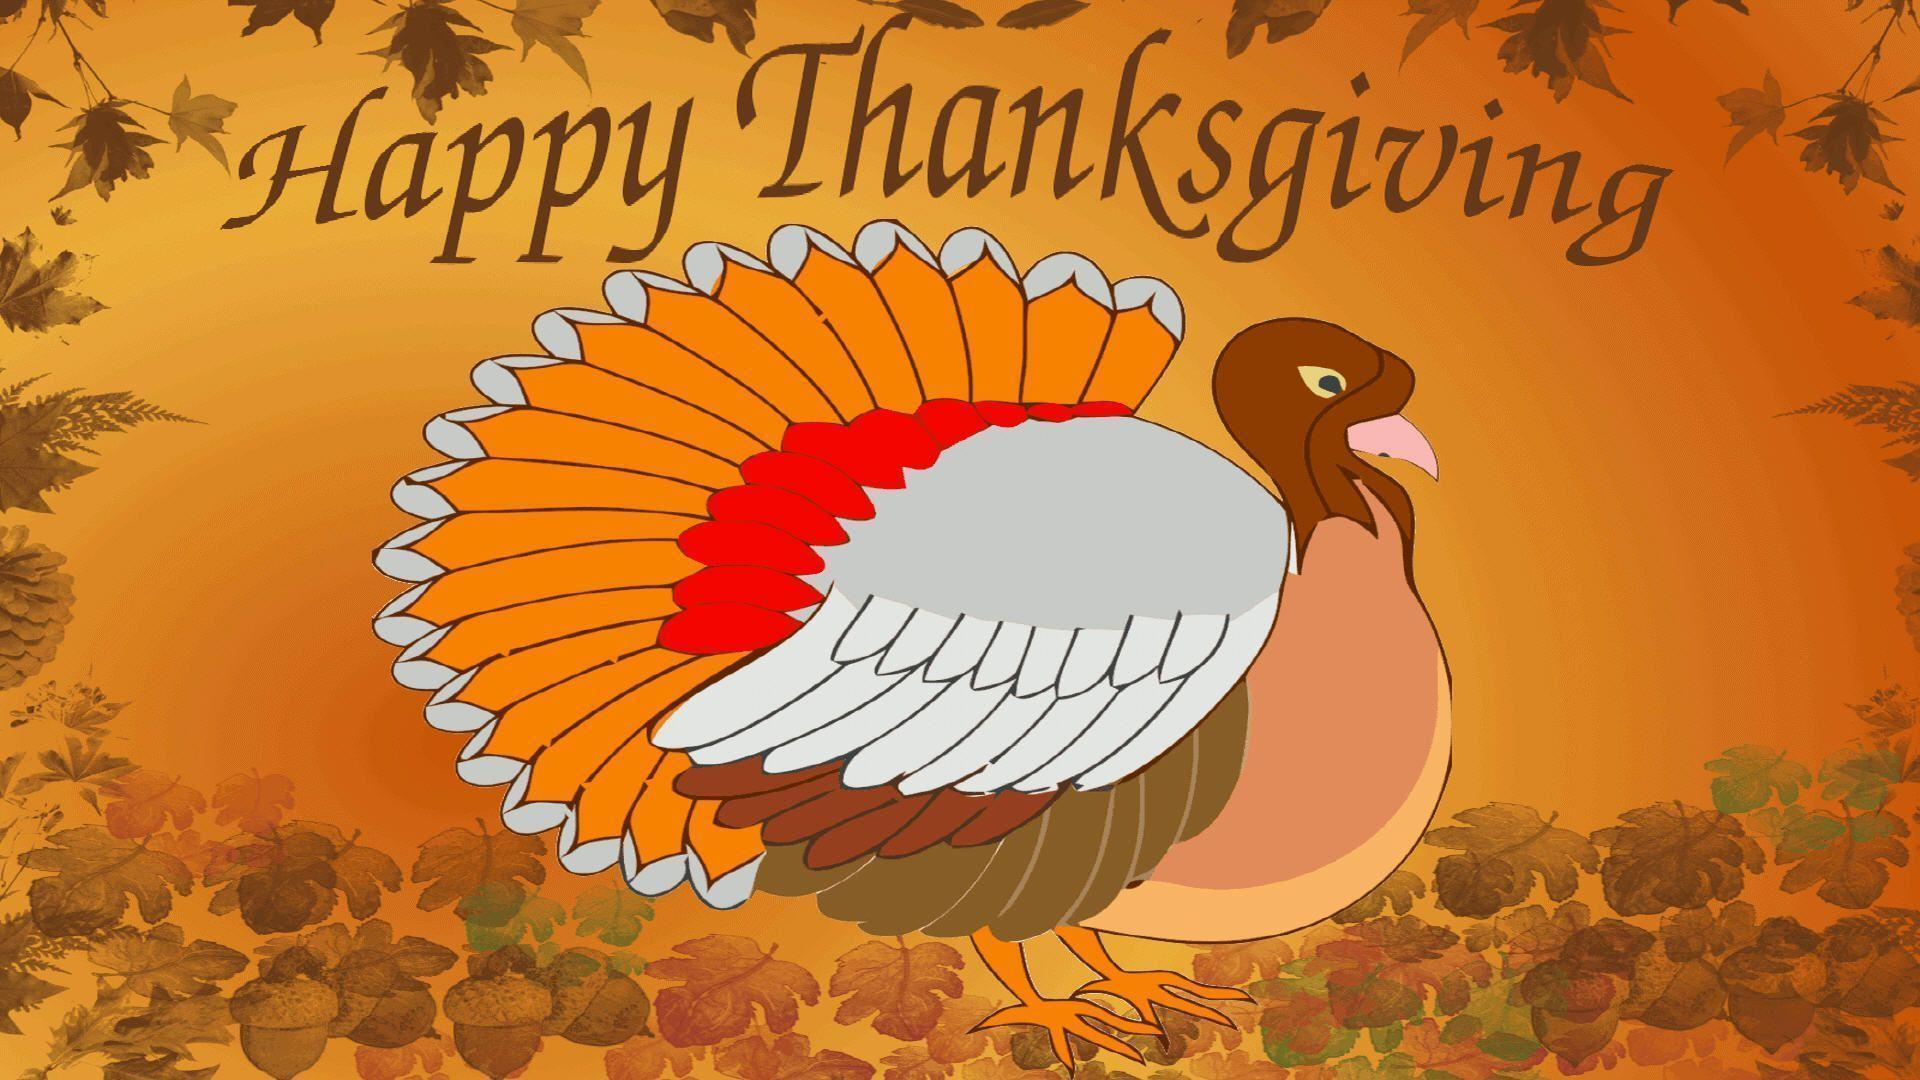 free fun thanksgiving wallpapers - photo #38